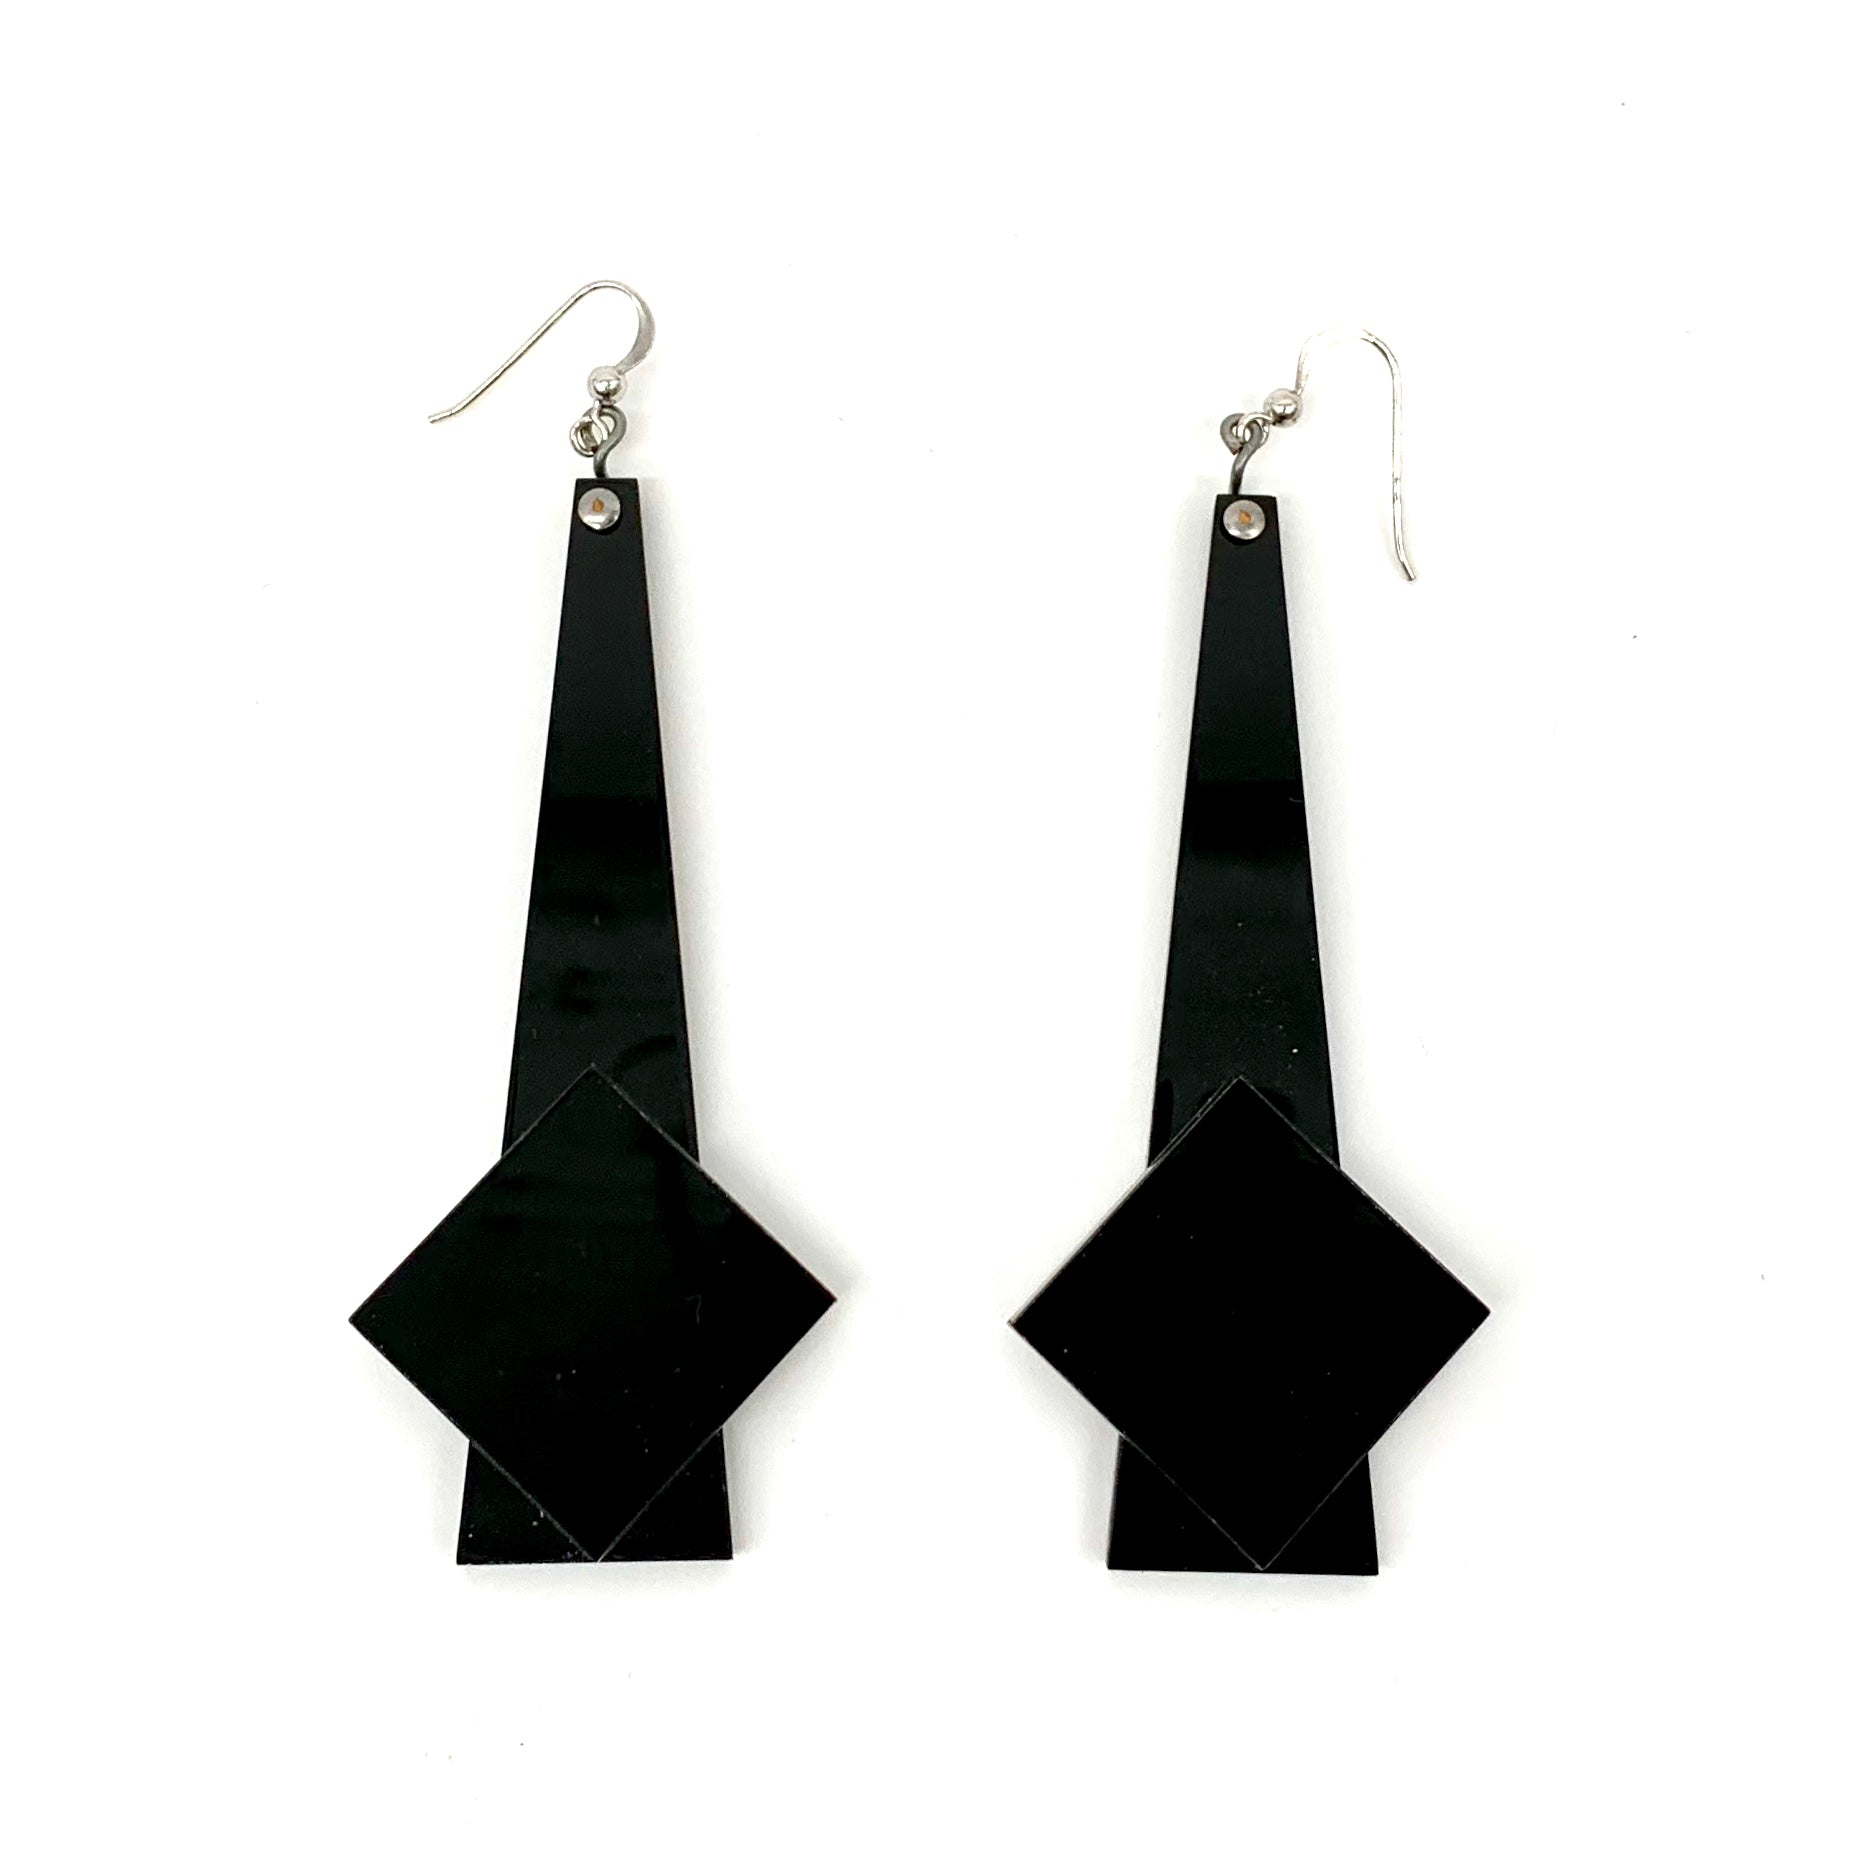 Plexiglass Earrings